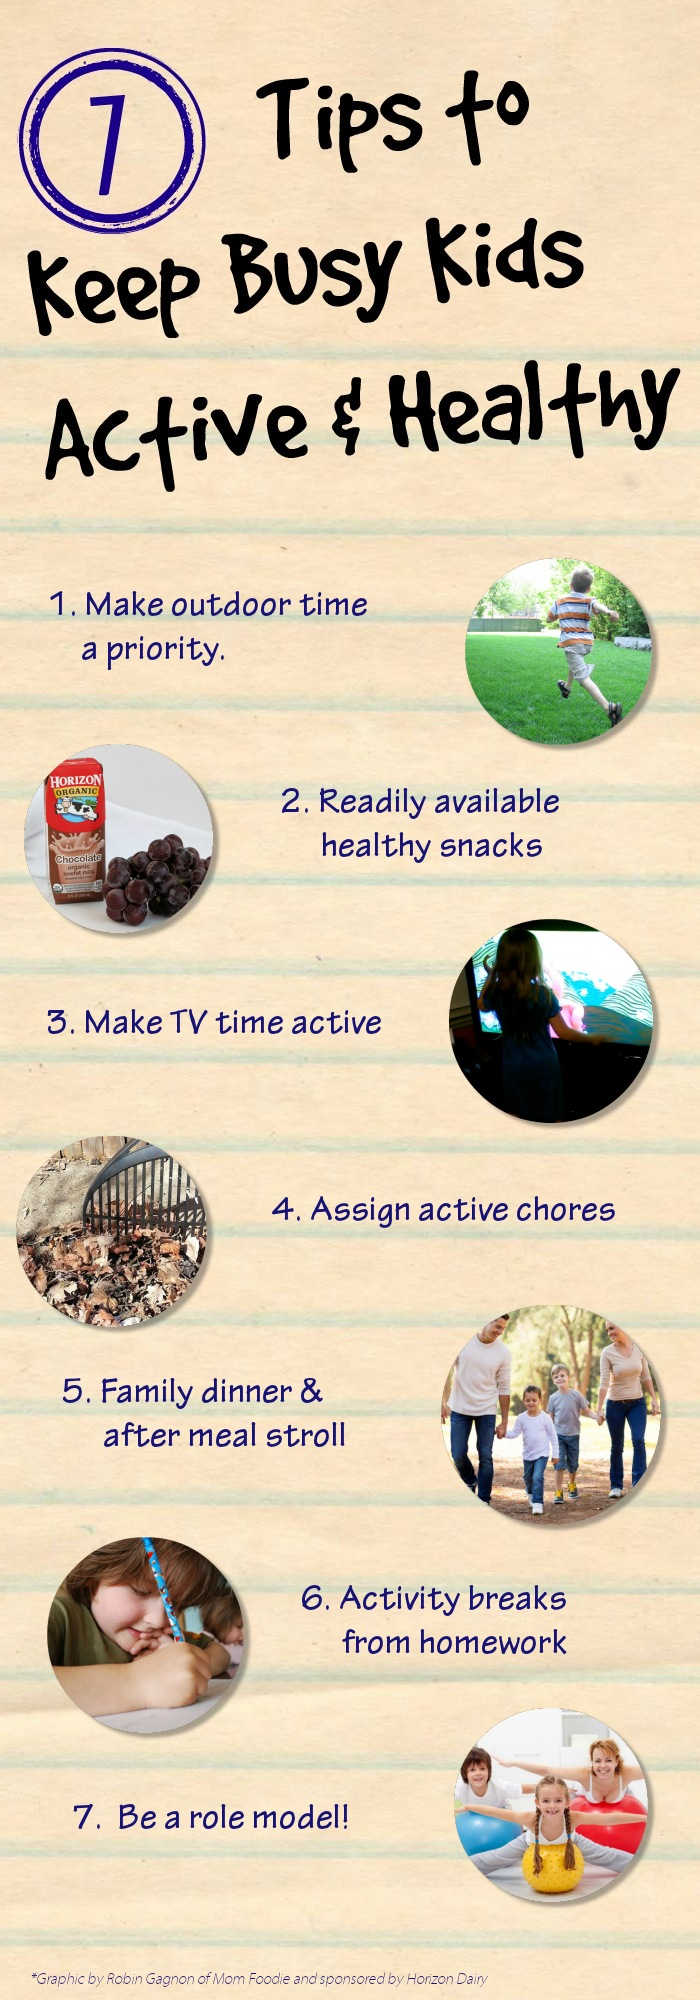 7 Tips to Keep Busy Kids Healthy and Active